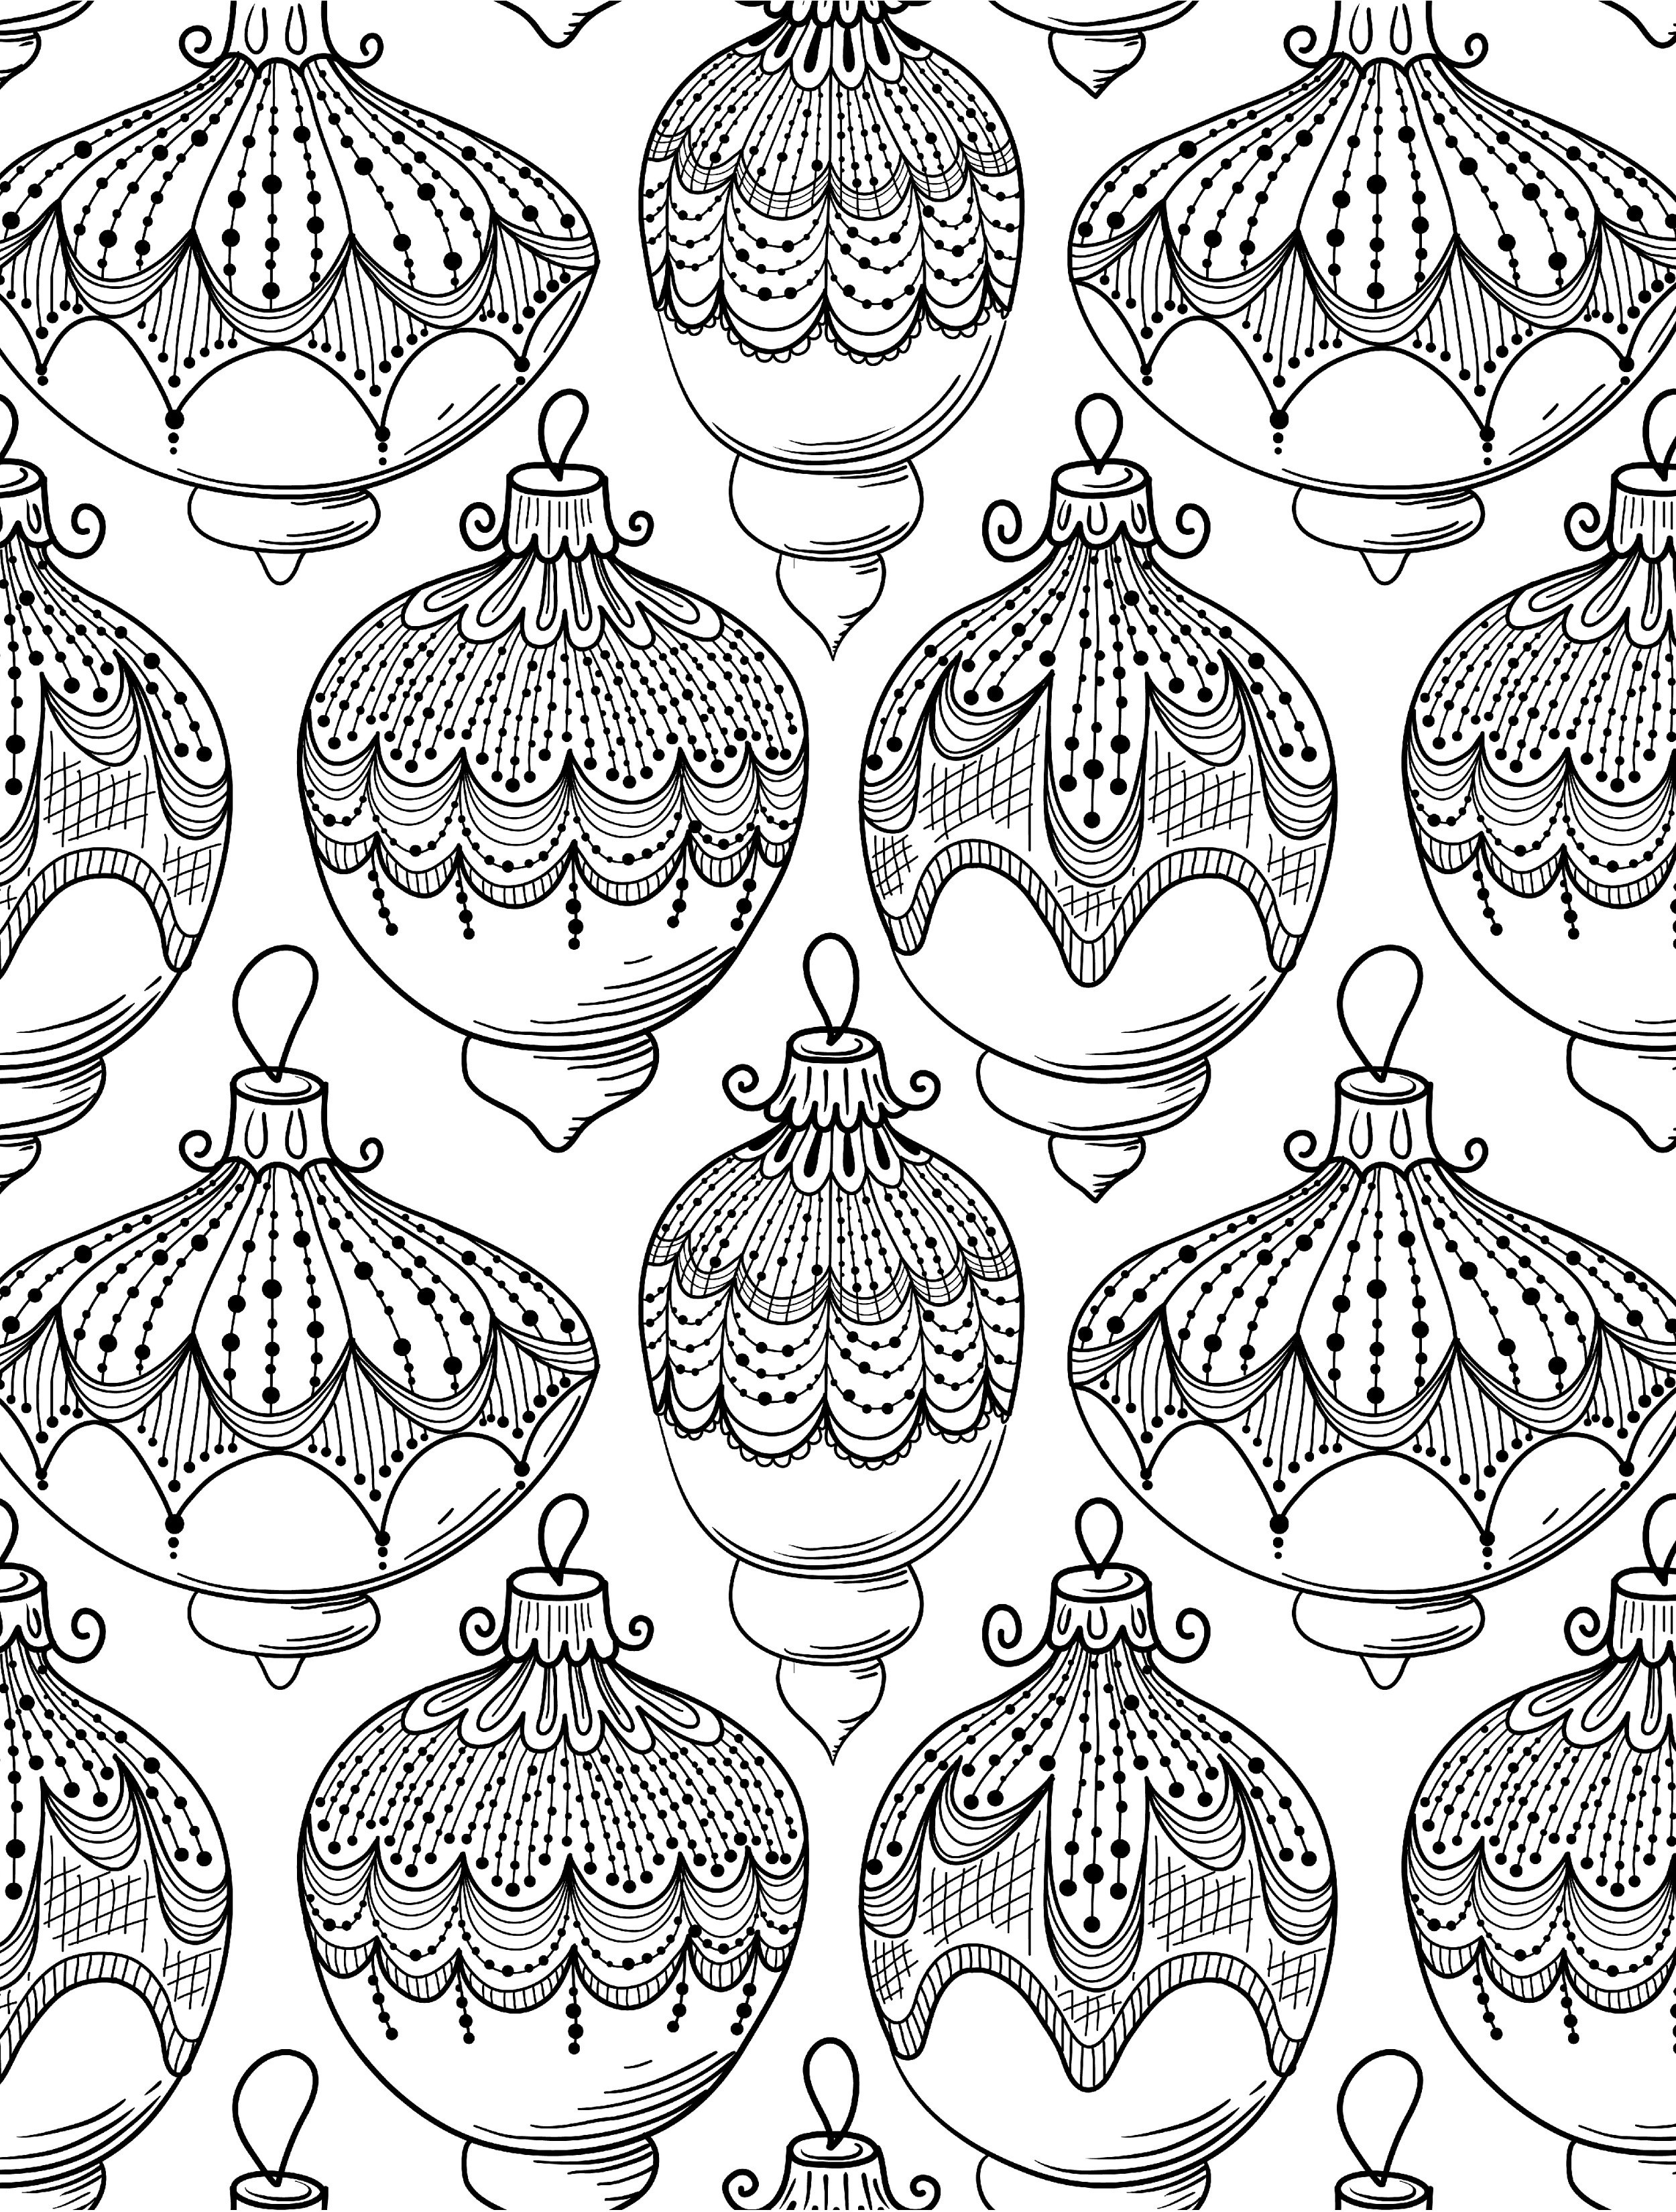 Christmas Coloring Pages For Adults Free Printable With Lovely Adult Bell Rehwoldt